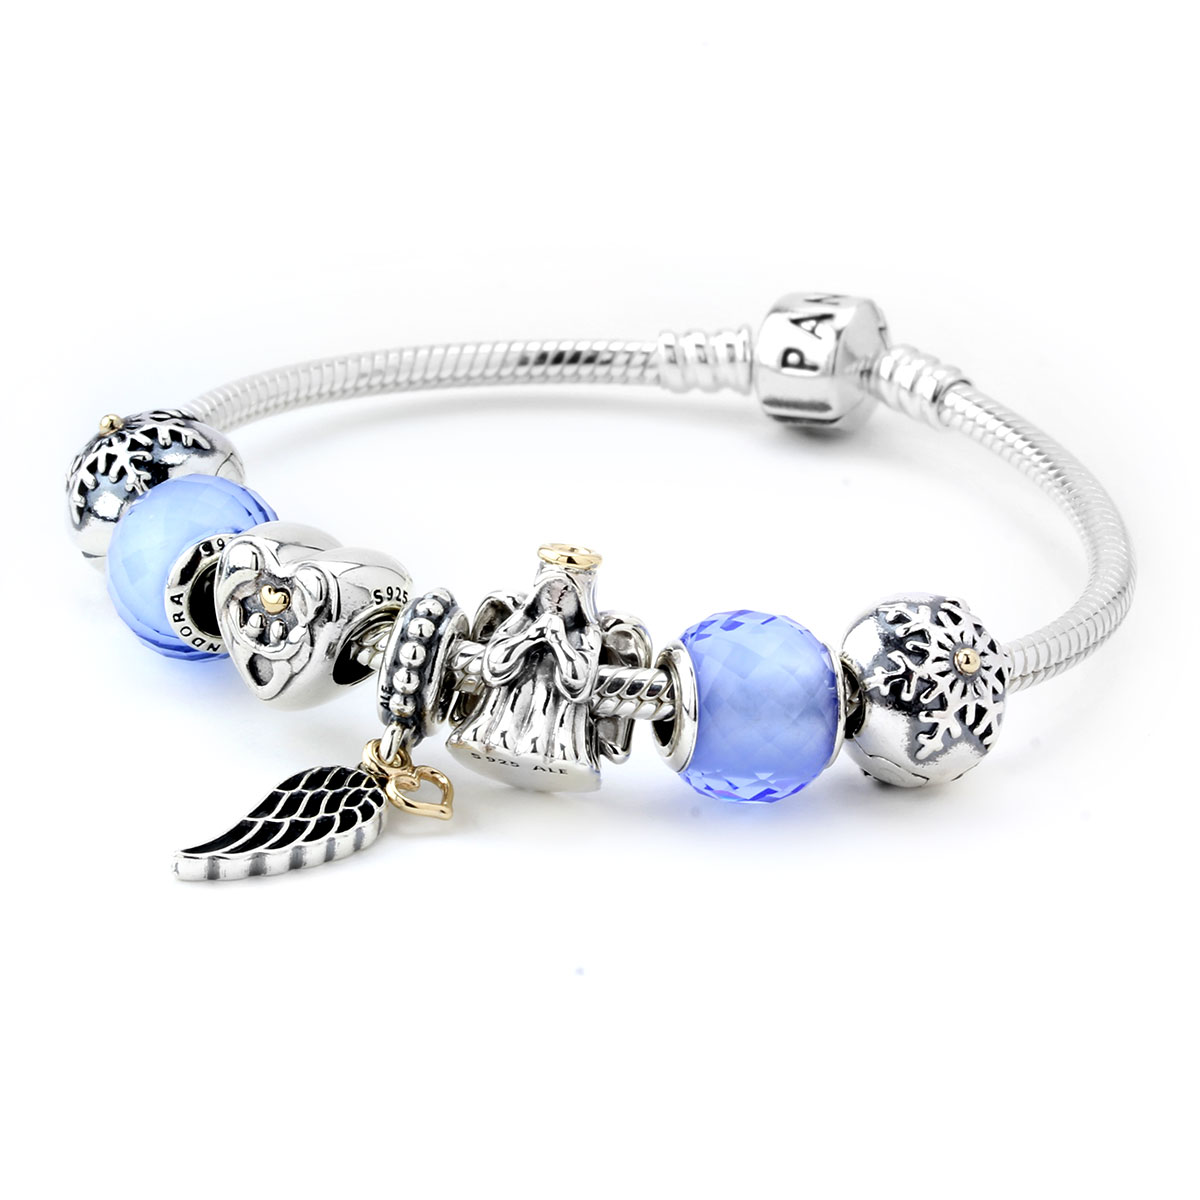 pandora bracelet design ideas bangle bracelets pandora bracelet design ideas - Bracelet Design Ideas